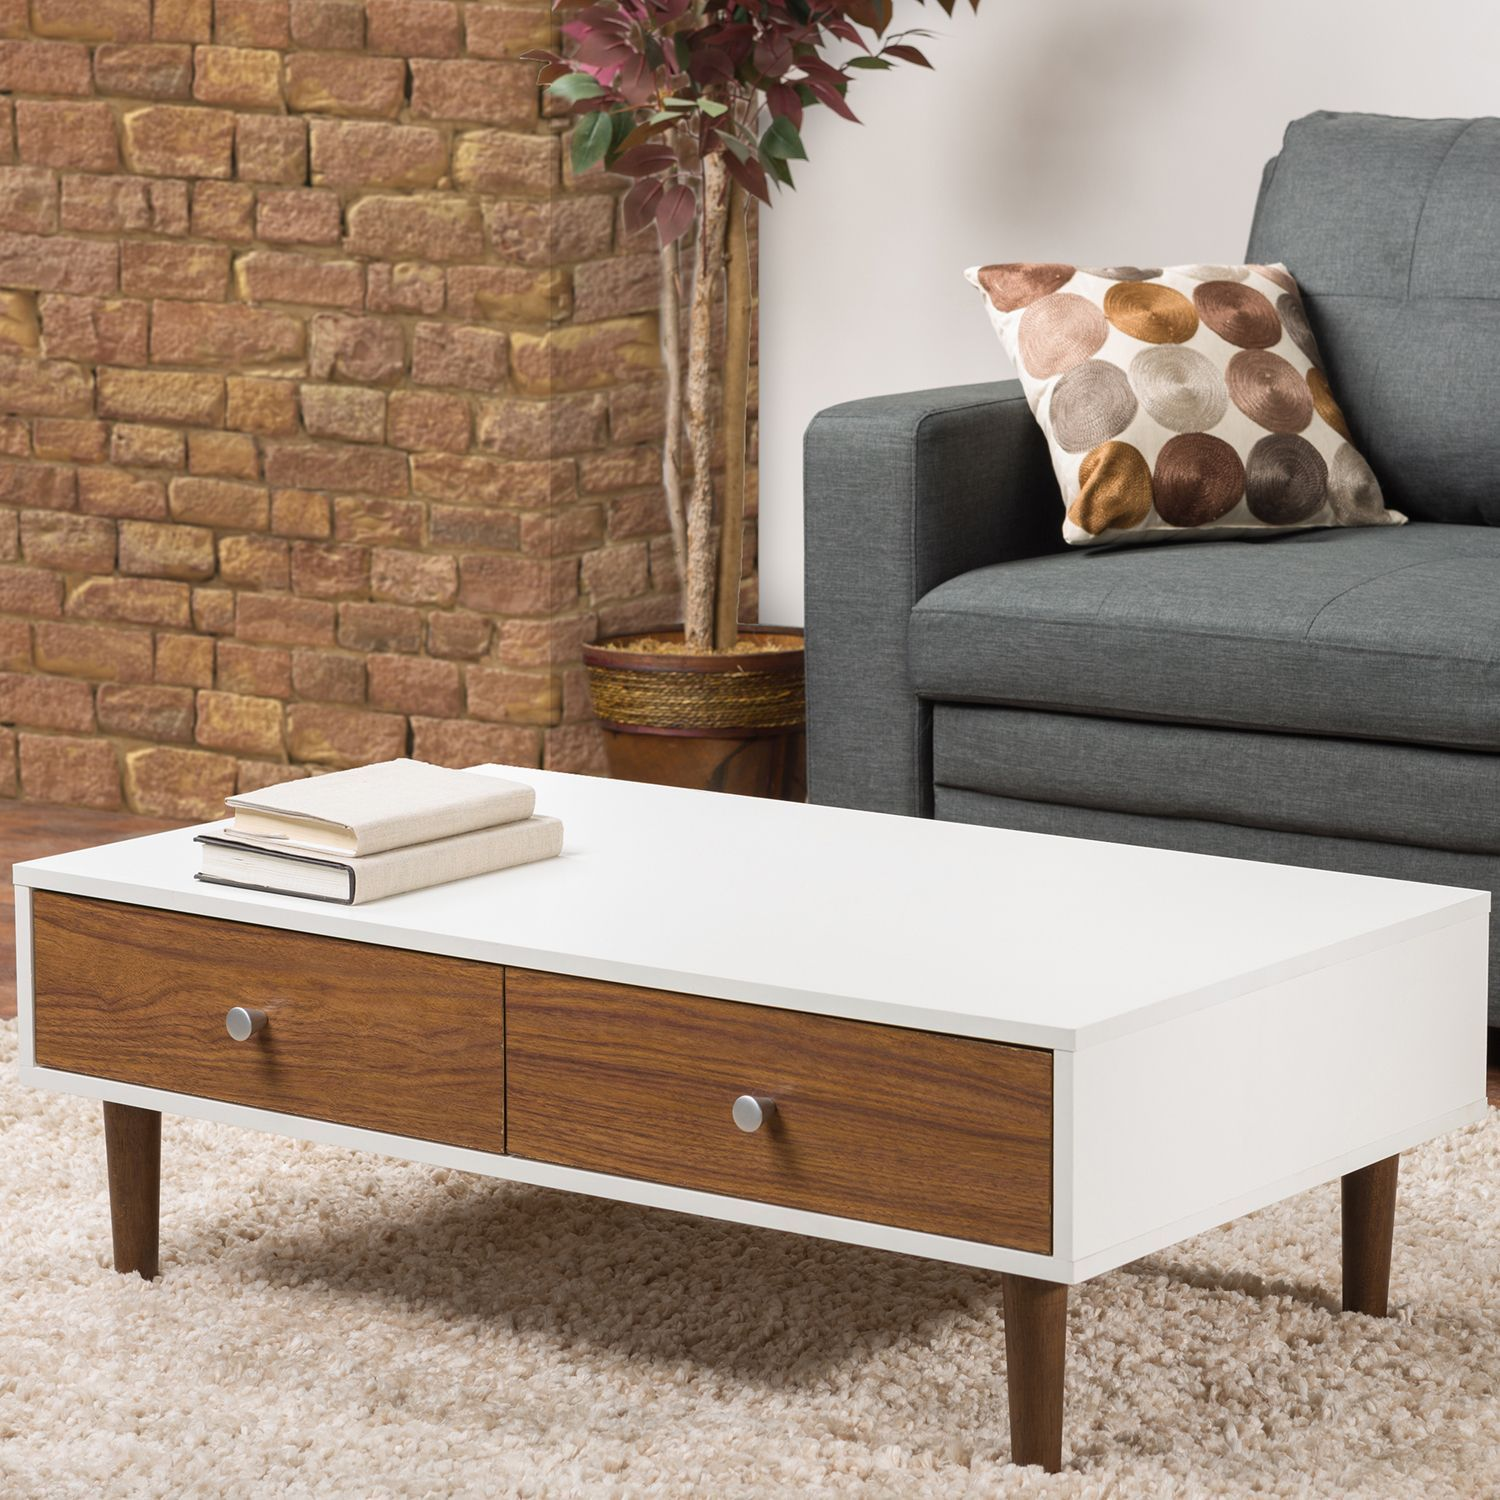 Our Best Living Room Furniture Deals Mid Century Modern Coffee Table Mid Century Style Coffee Table Coffee Table White [ 1500 x 1500 Pixel ]